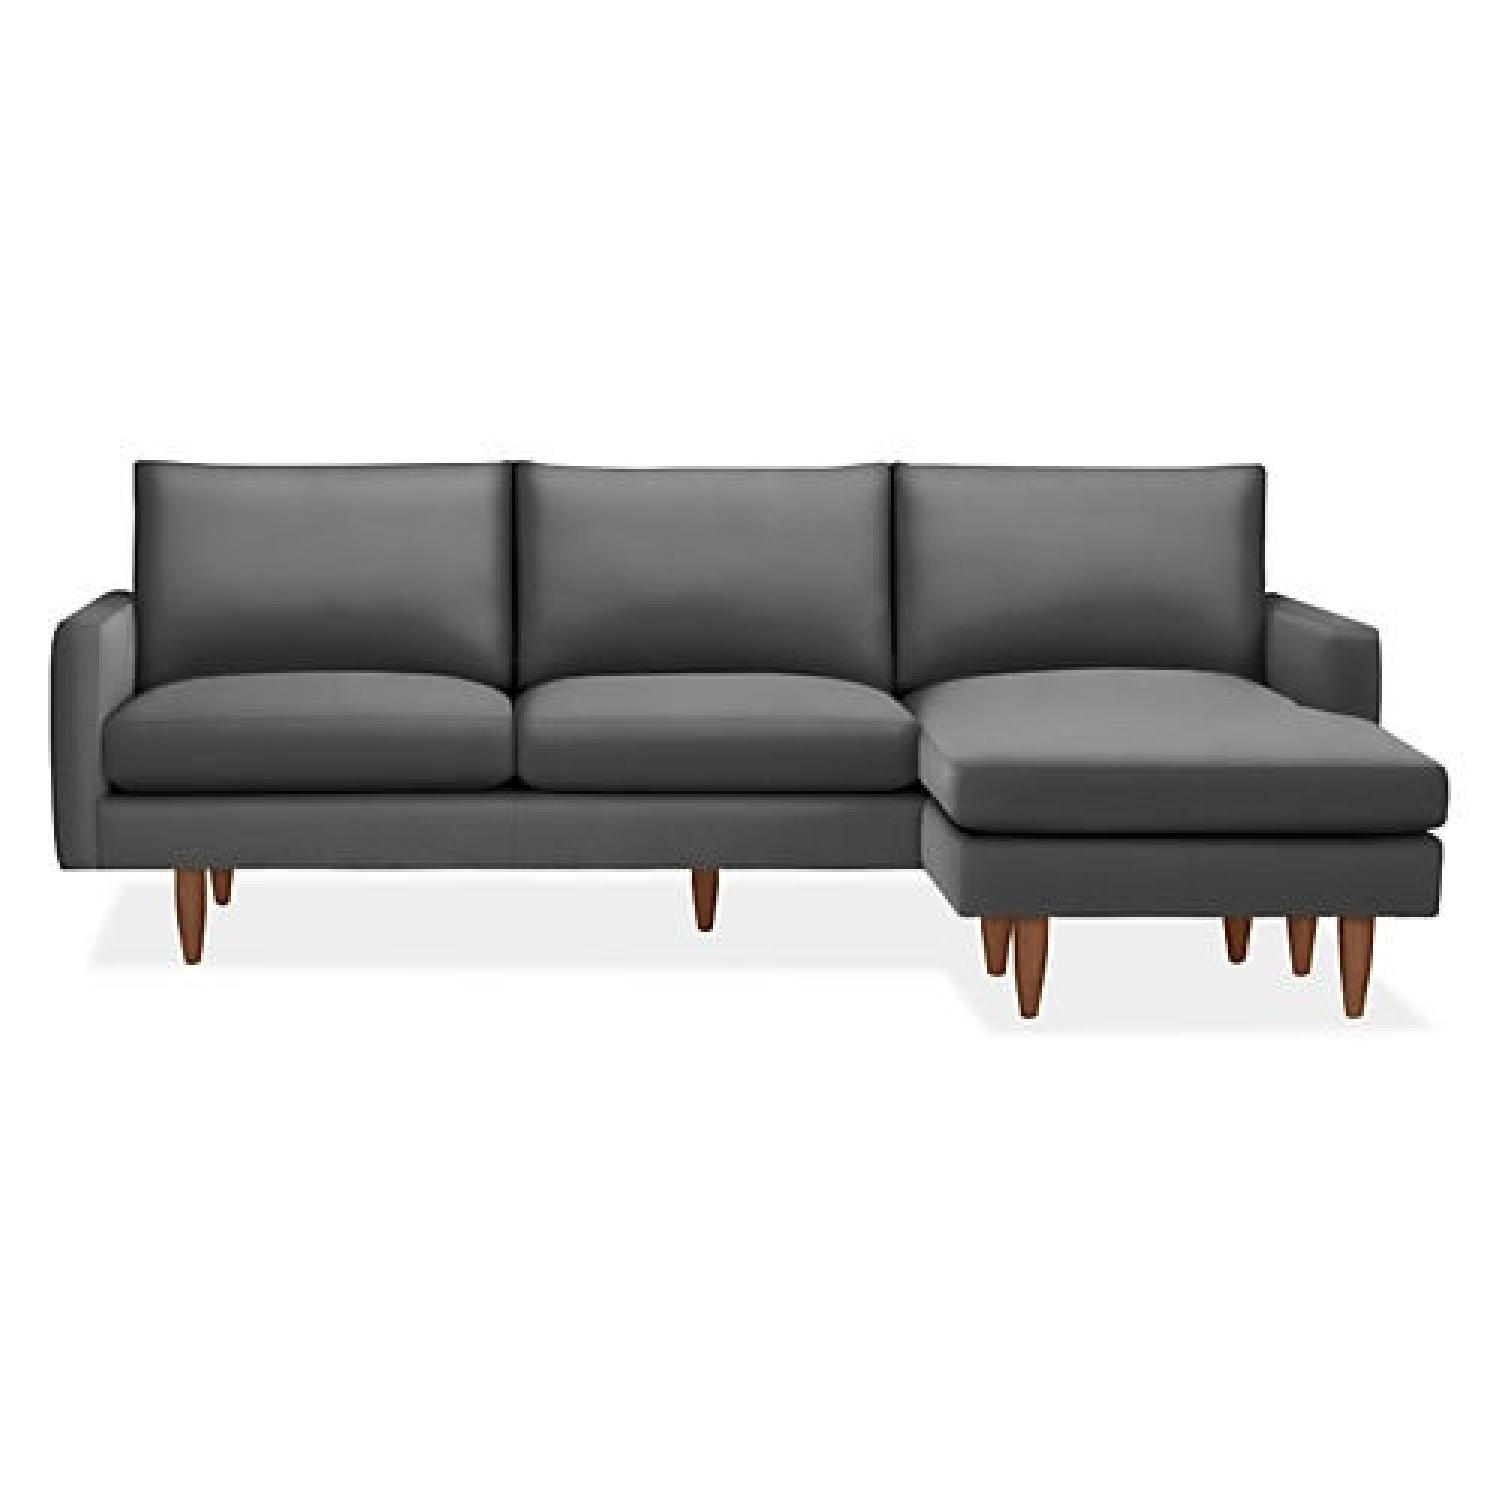 Room & Board Jasper 2-piece Sectional in Dark Grey